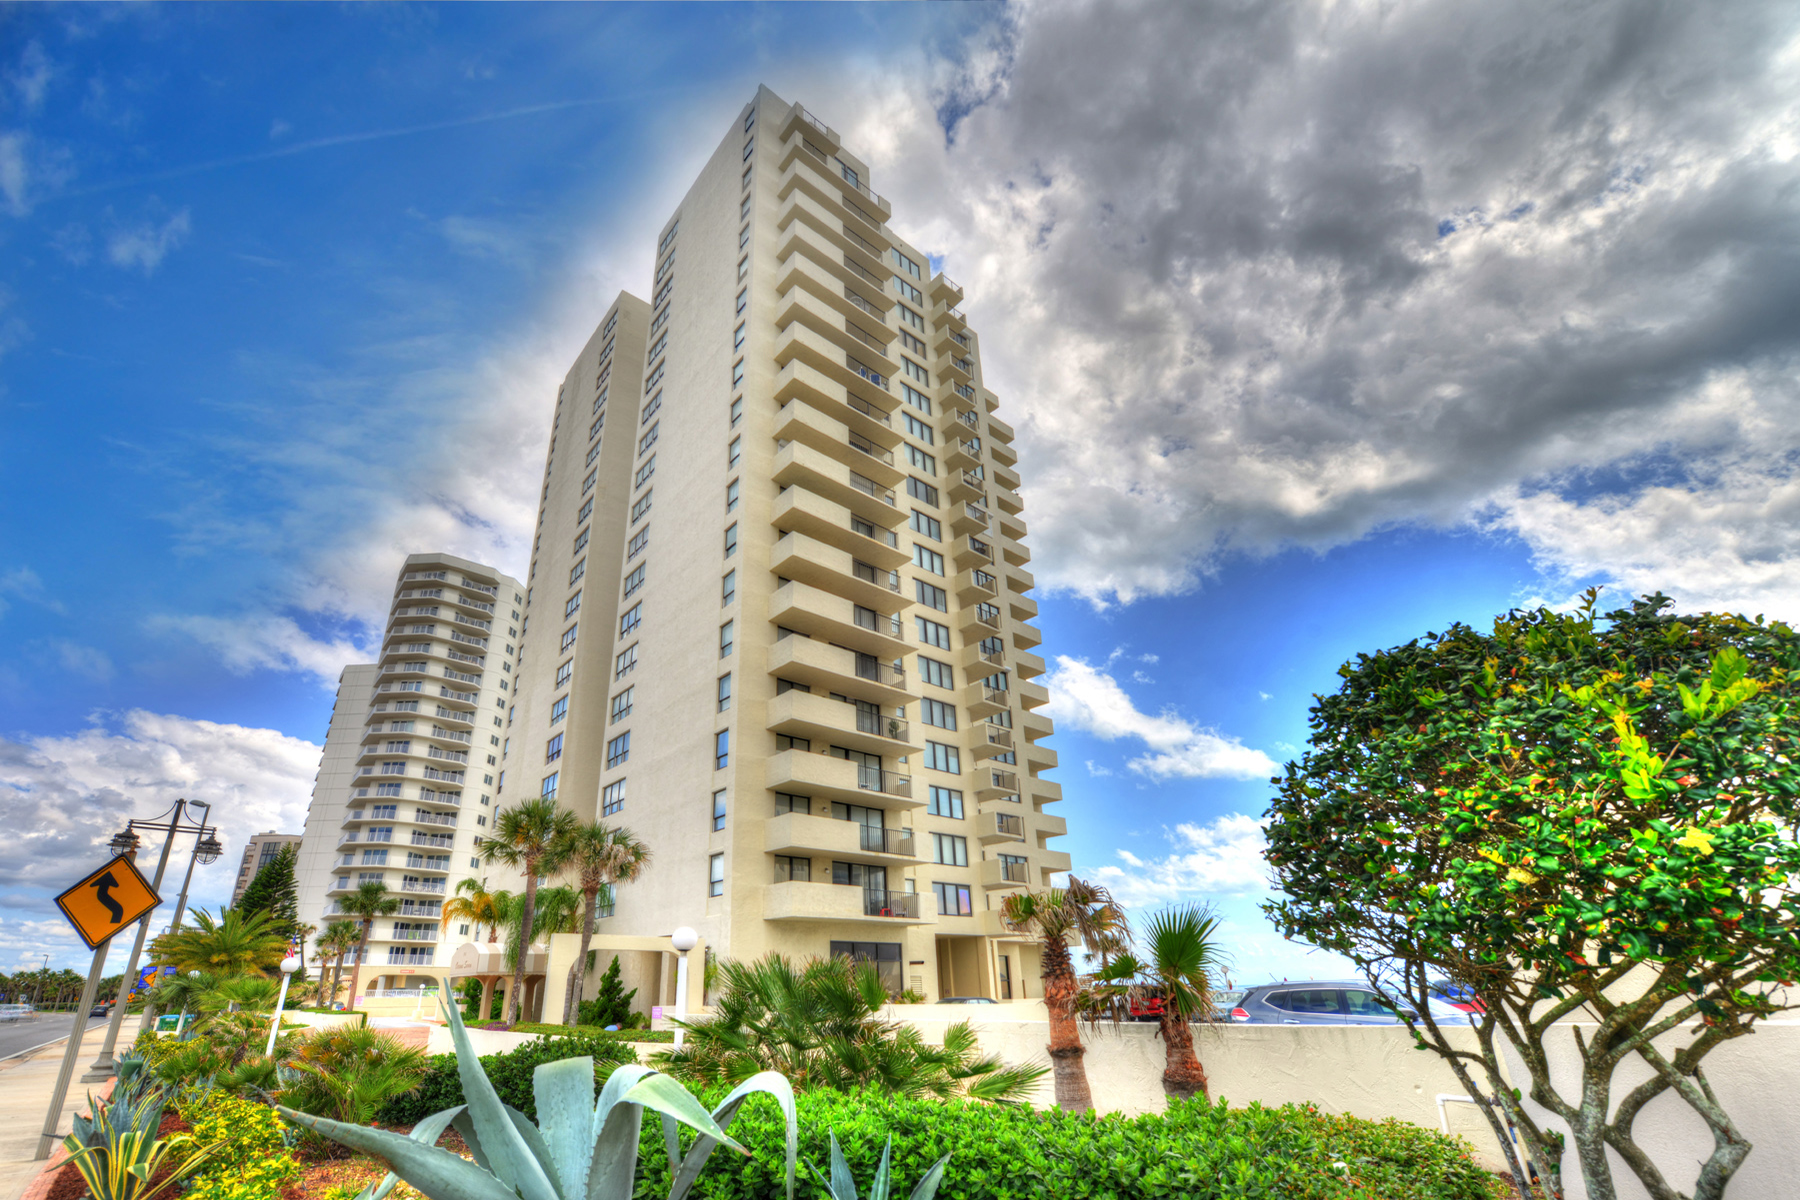 Condominiums for Sale at Daytona Beach Shores 2947 S Atlantic Ave , 1106 Daytona Beach Shores, Florida 32118 United States